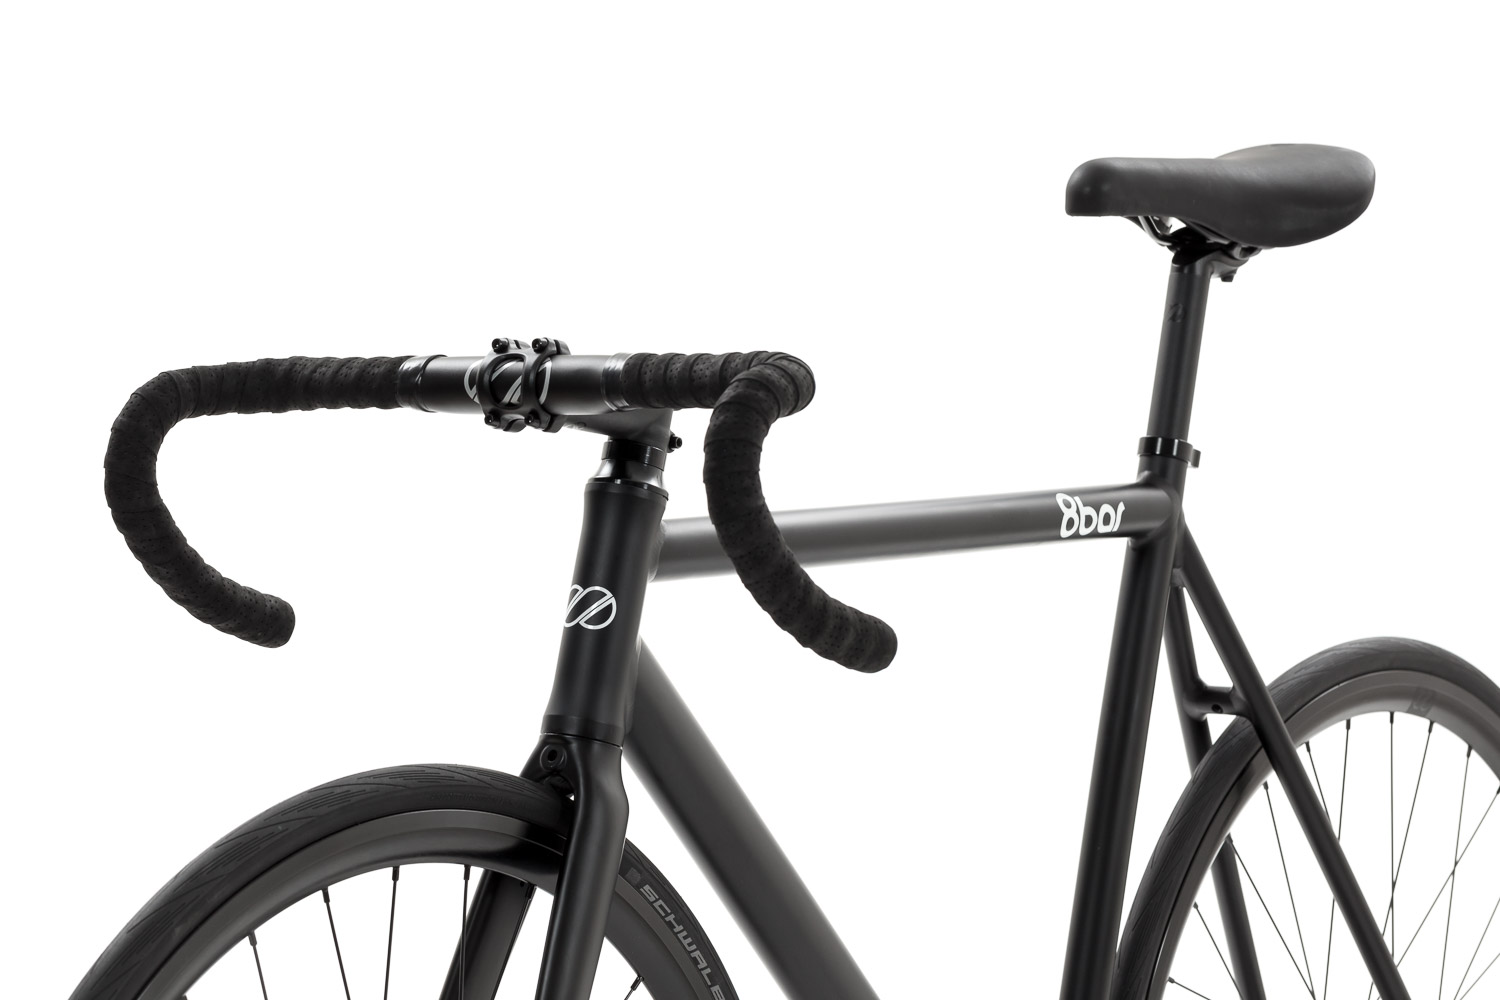 8bar-fhain-comp-black-drop-fixie-fixed-gear-2